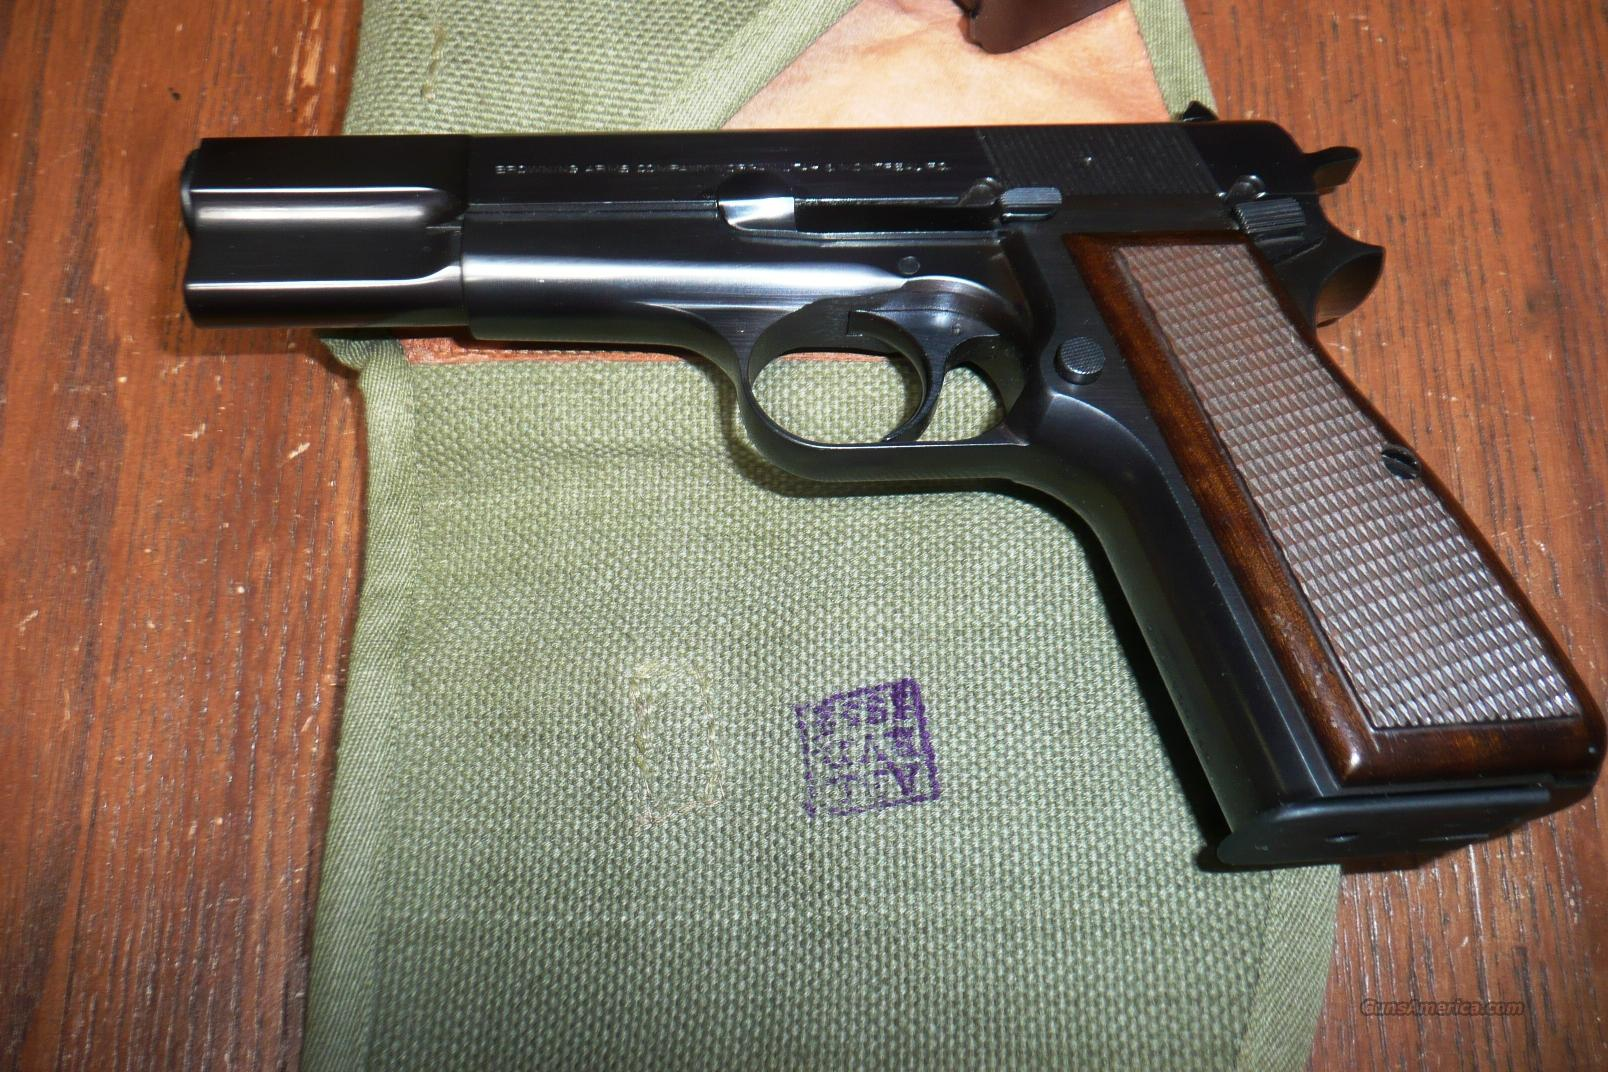 BELGUIM MANUFACTURED HI POWER 9MM  Guns > Pistols > Browning Pistols > Hi Power